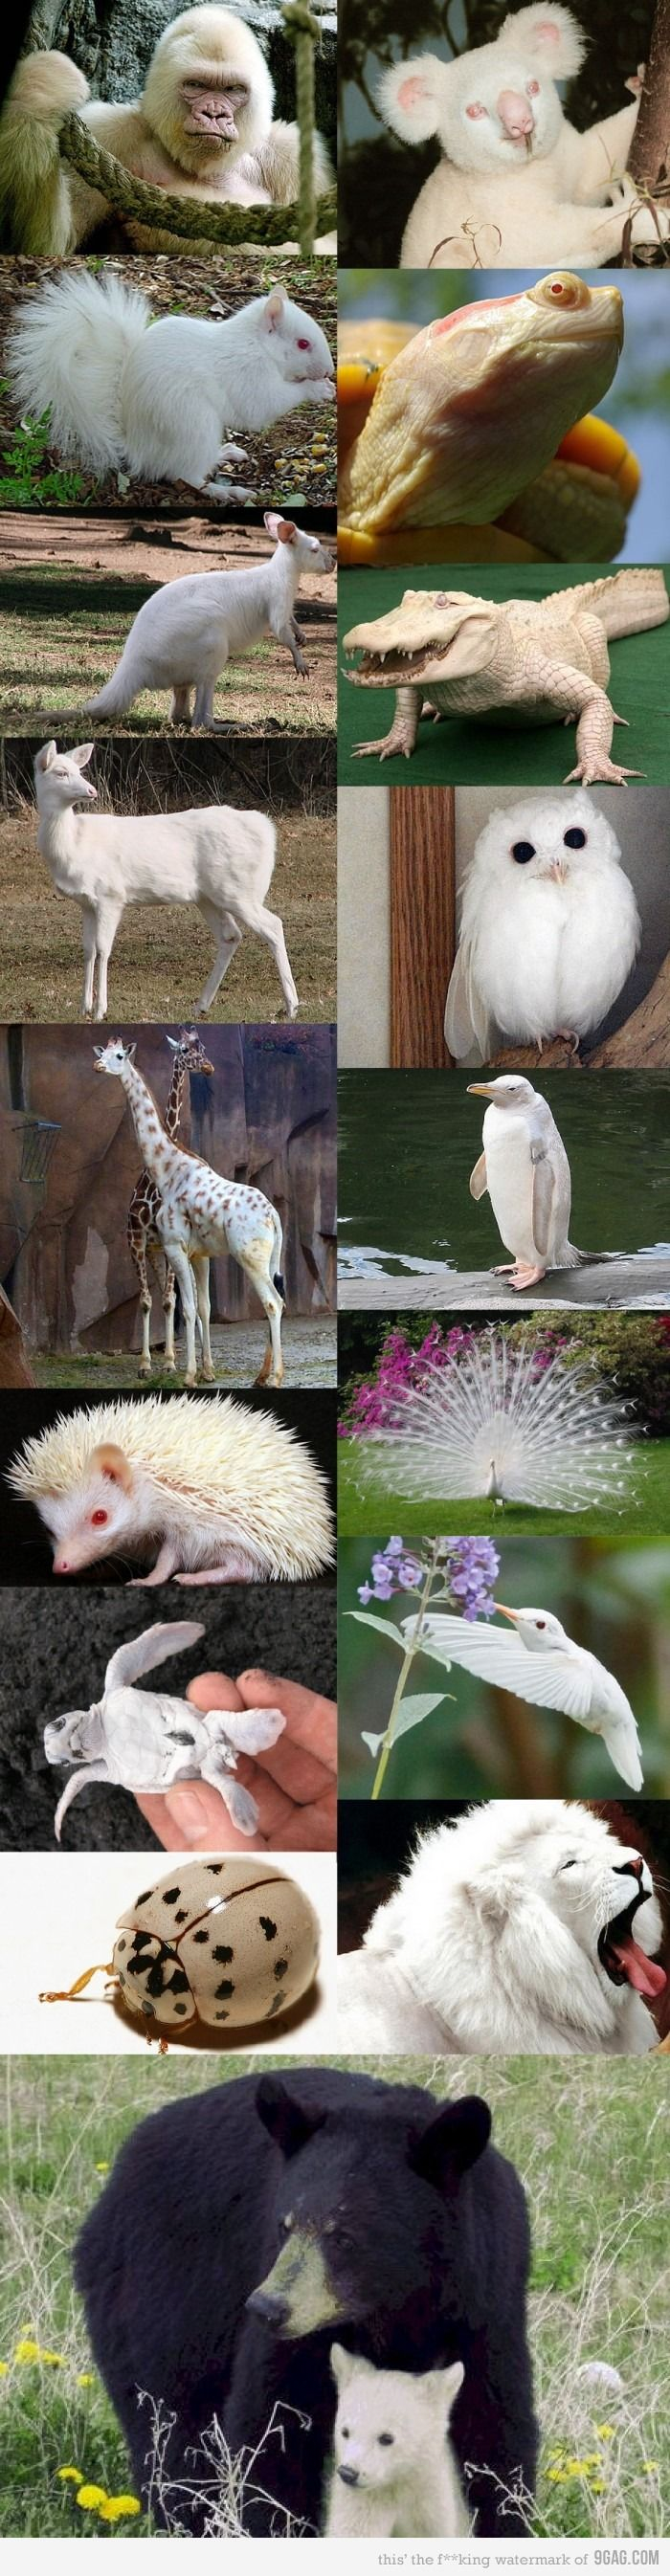 animales albinos - photo #42